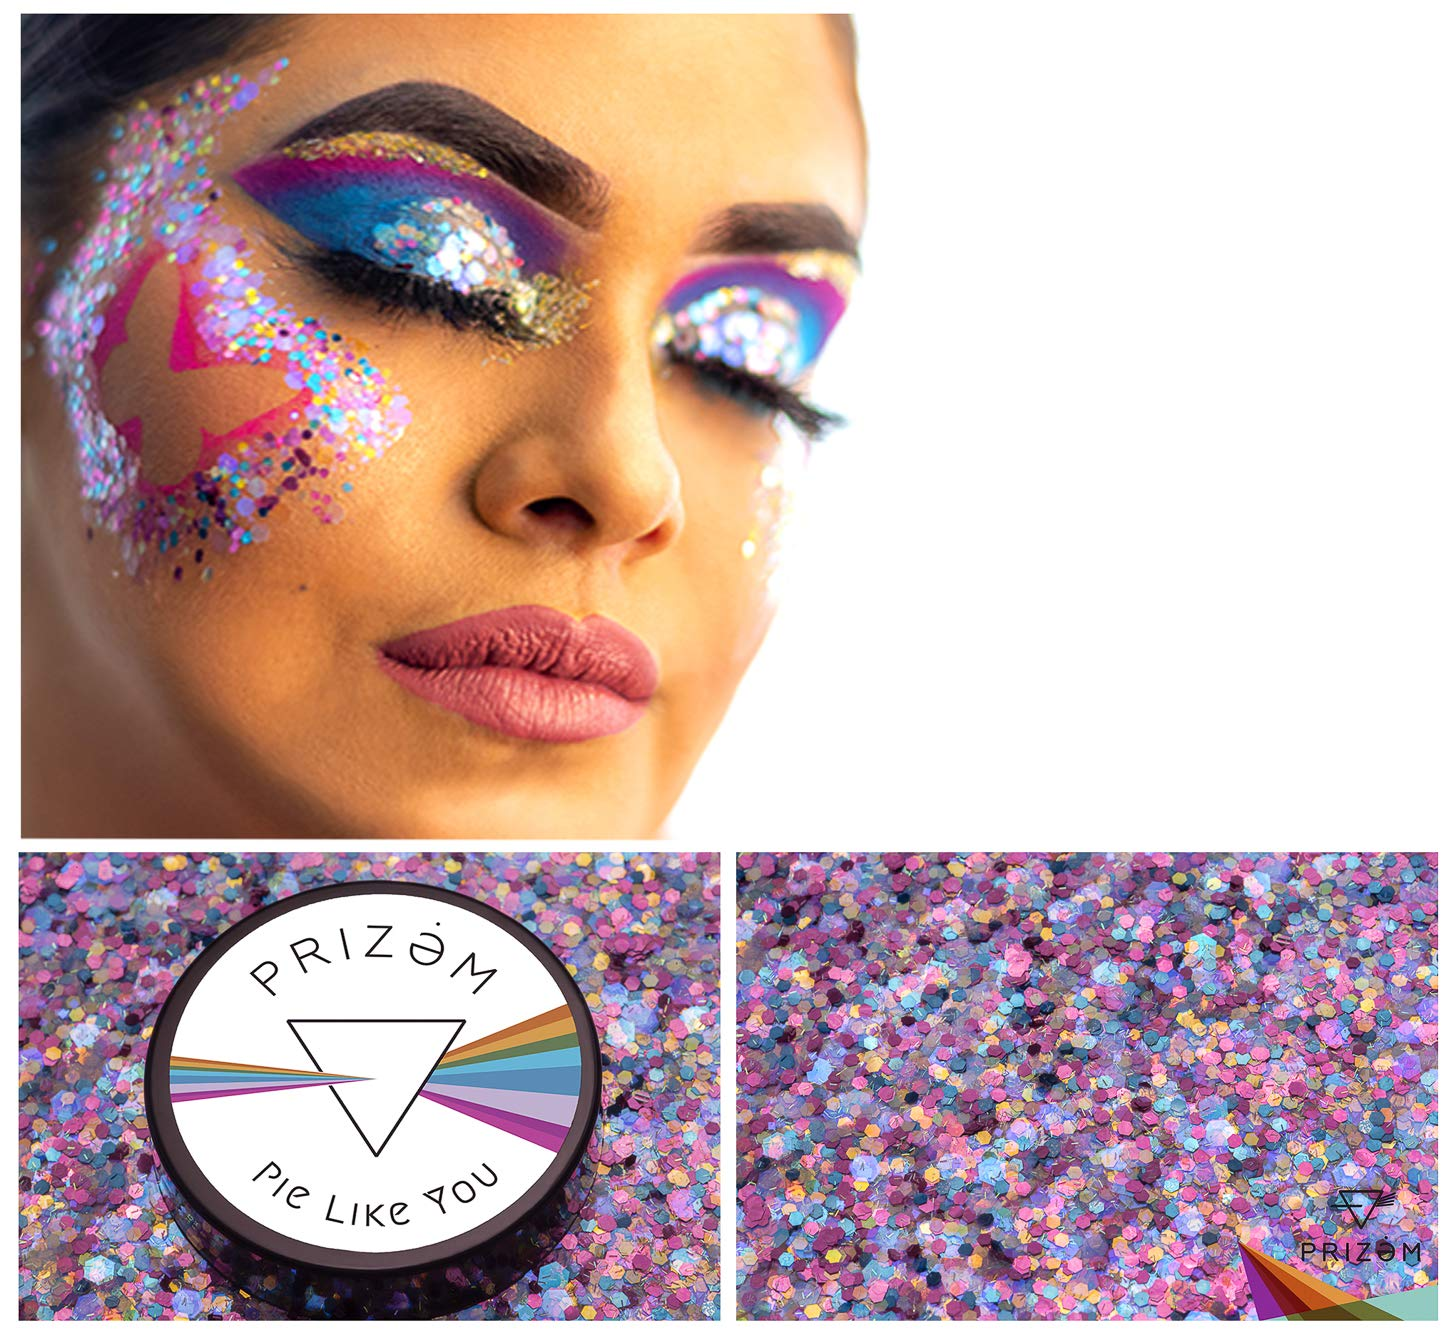 Pie Like You Biodegradable Glitter ▽15g▽ Festival Glitter, Chunky Glitter, Makeup Glitter, Face Glitter, Body Glitter, Glitter Makeup, Hair Glitter, Cosmetic Glitter, Nail Glitter